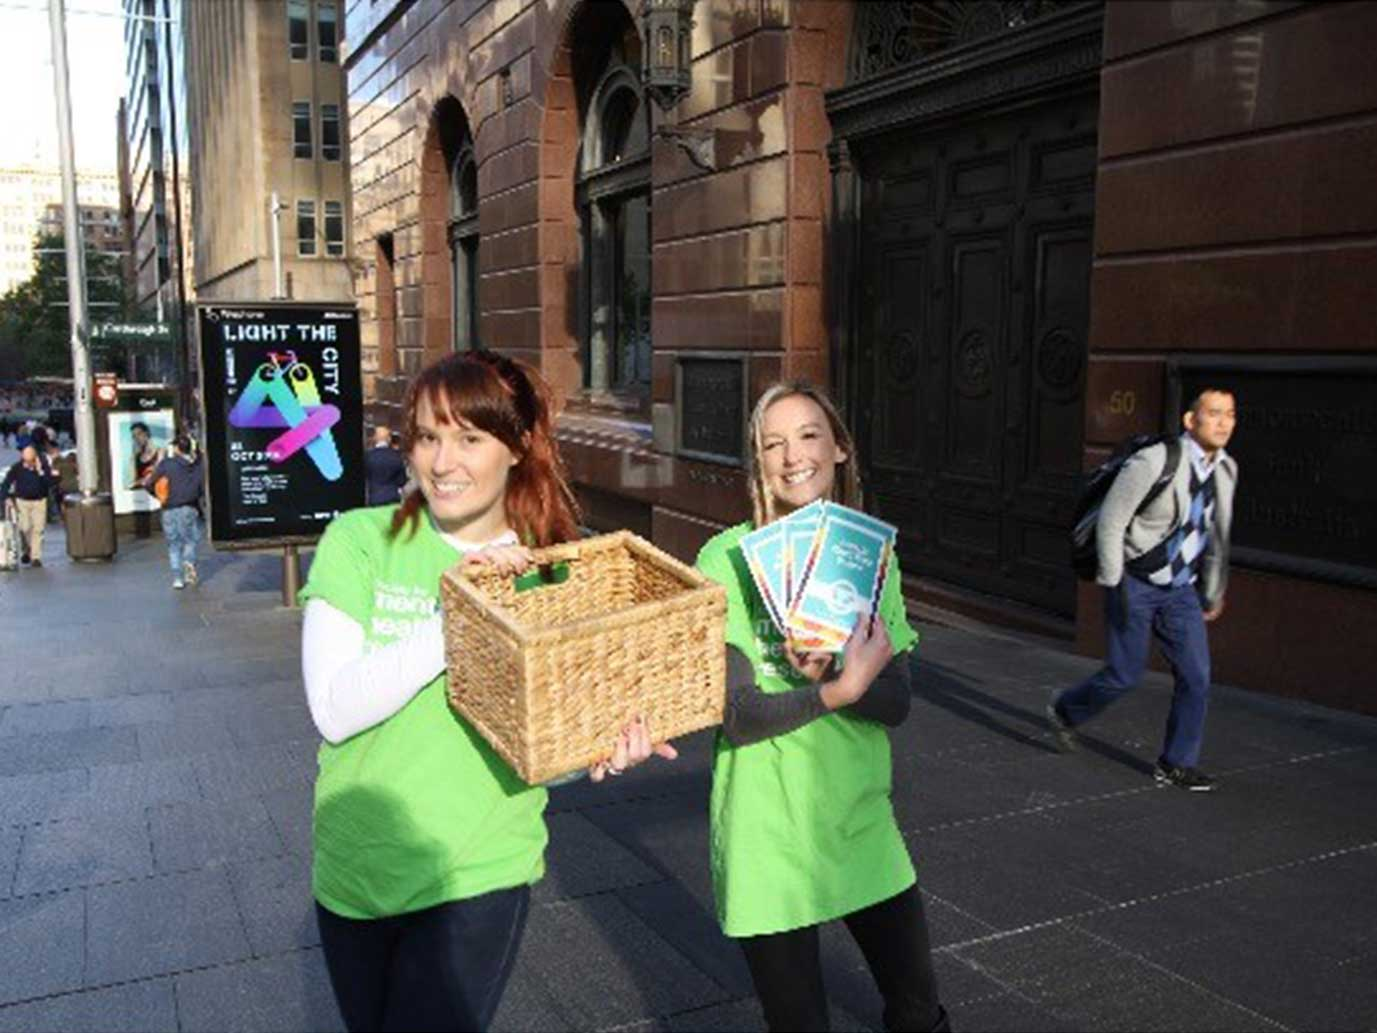 Mental Health Week – 2016 - To mark Mental Health Week and build awareness of SMHR, Louise Birrell, Katrina Prior, Louise Thornton and Emily Stockings spent a morning in Martin Place in Sydney's CBD. Wearing SMHR t-shirts, they handed out over 100 SMHR promotional flyers and apples with promotional stickers to commuters and passer-bys.